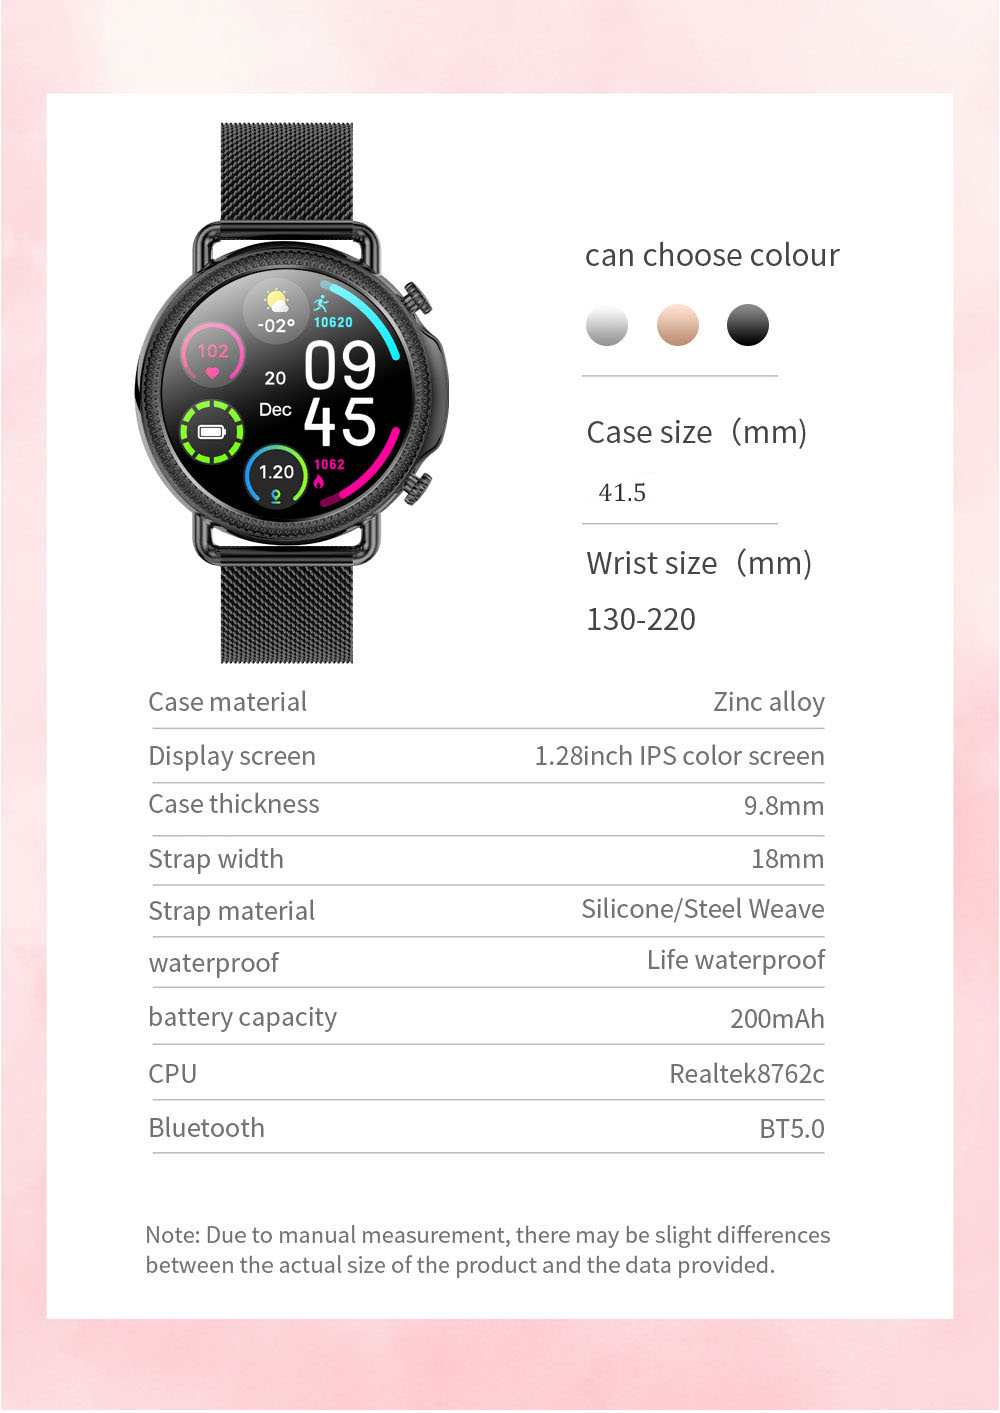 H2e8e21c4ce5b4057b588f89fac7895fc8 2021 Women Smart Watch 1.28 inch HD Screen IP67 Waterproof Lady's Watches Body Temperature Heart Rate Monitor PK V23